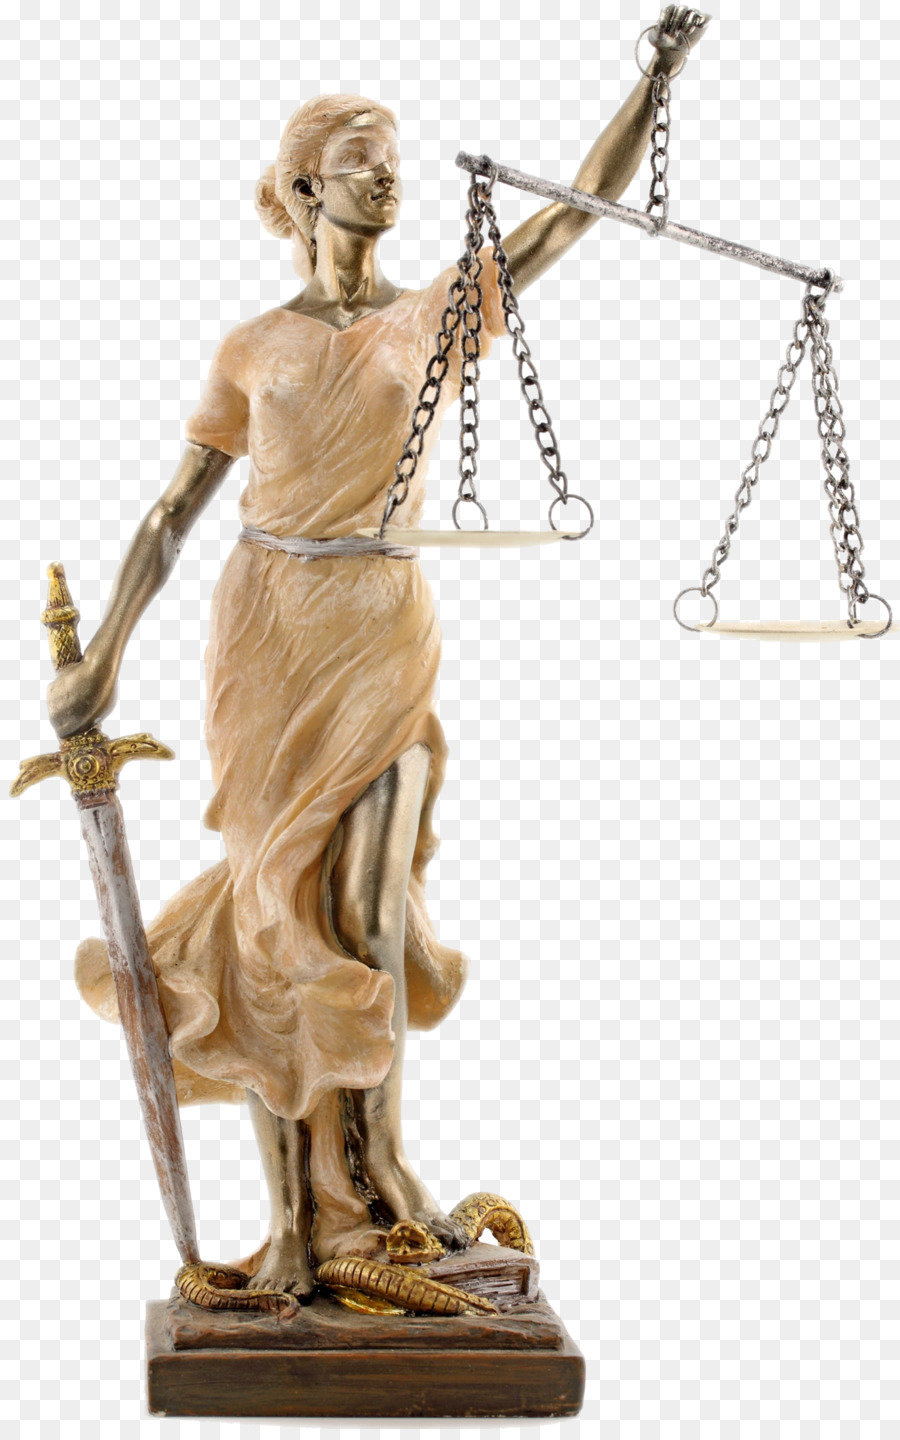 Financial Justice: The Peoples Campaign to Stop Lender Abuse Lawyer Finance  Lady Justice - Lawyer PNG Photo - Lawyer PNG HD